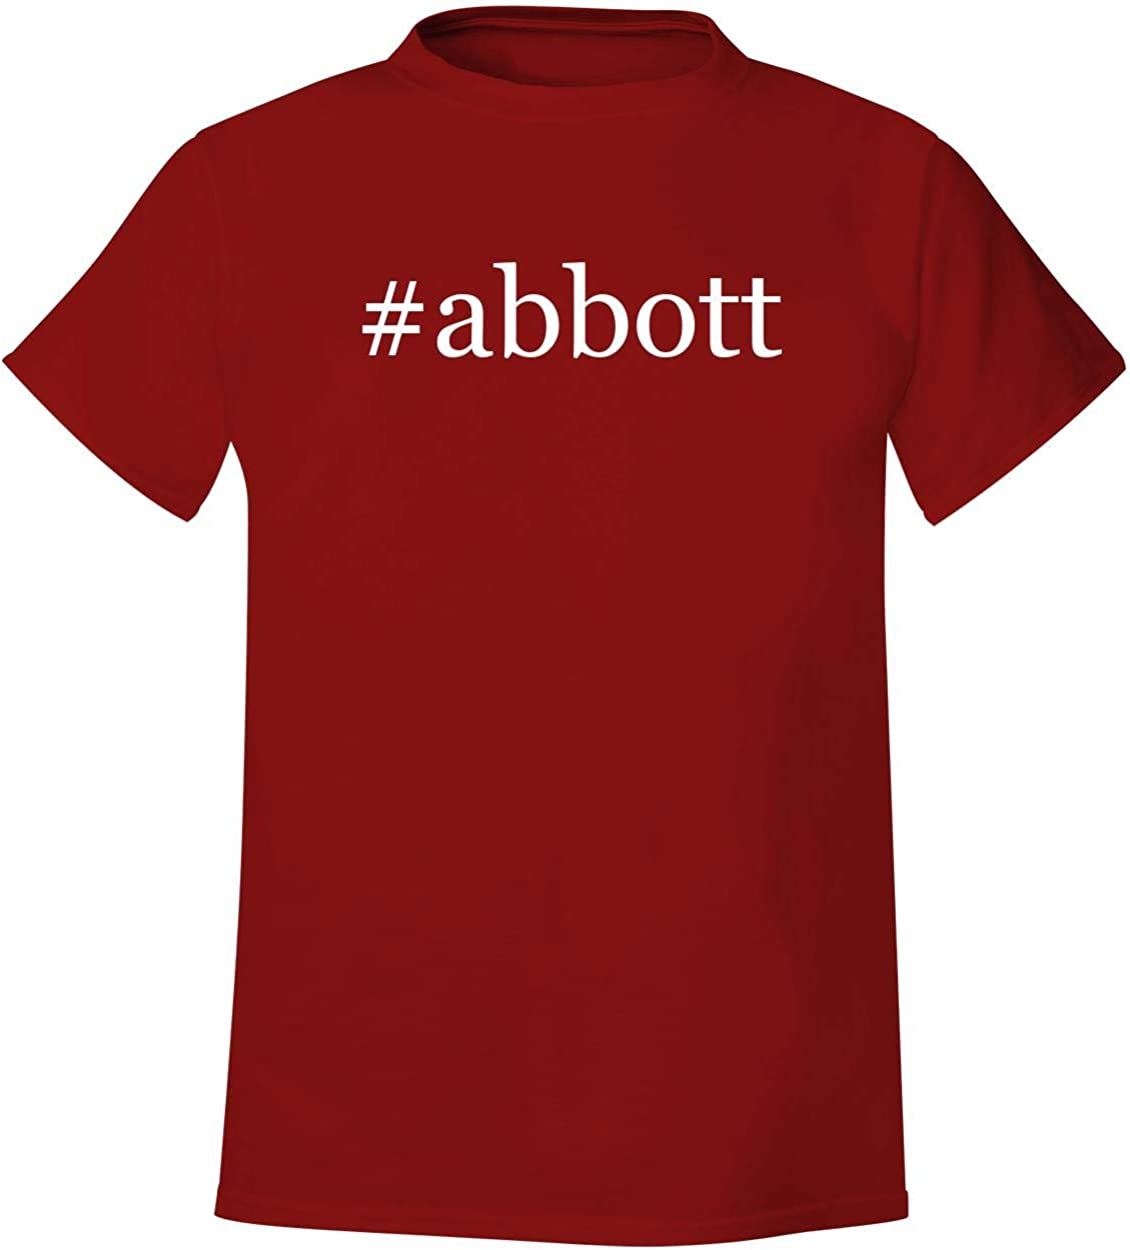 #abbott - Men's Hashtag Soft & Comfortable T-Shirt 51saZYSzmZL